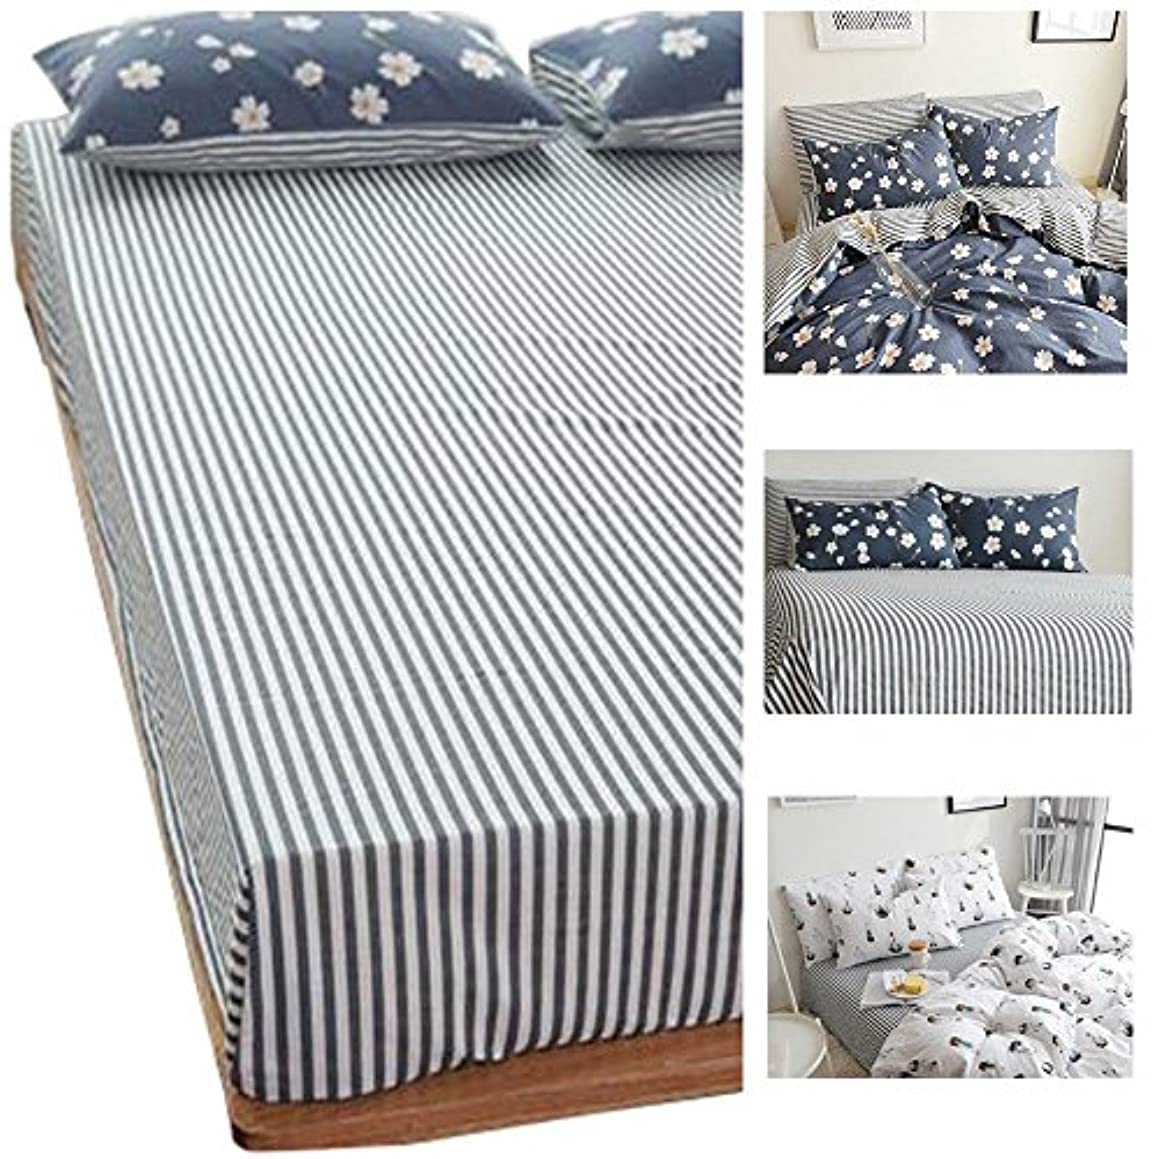 HIGHBUY Striped Fitted Sheet Twin 100% Cotton Kids Bed Deep Pocket (1pc,Twin) Elastic All Around -Wrinkle Fade Stain Resistant Premium Cotton Sheet(39